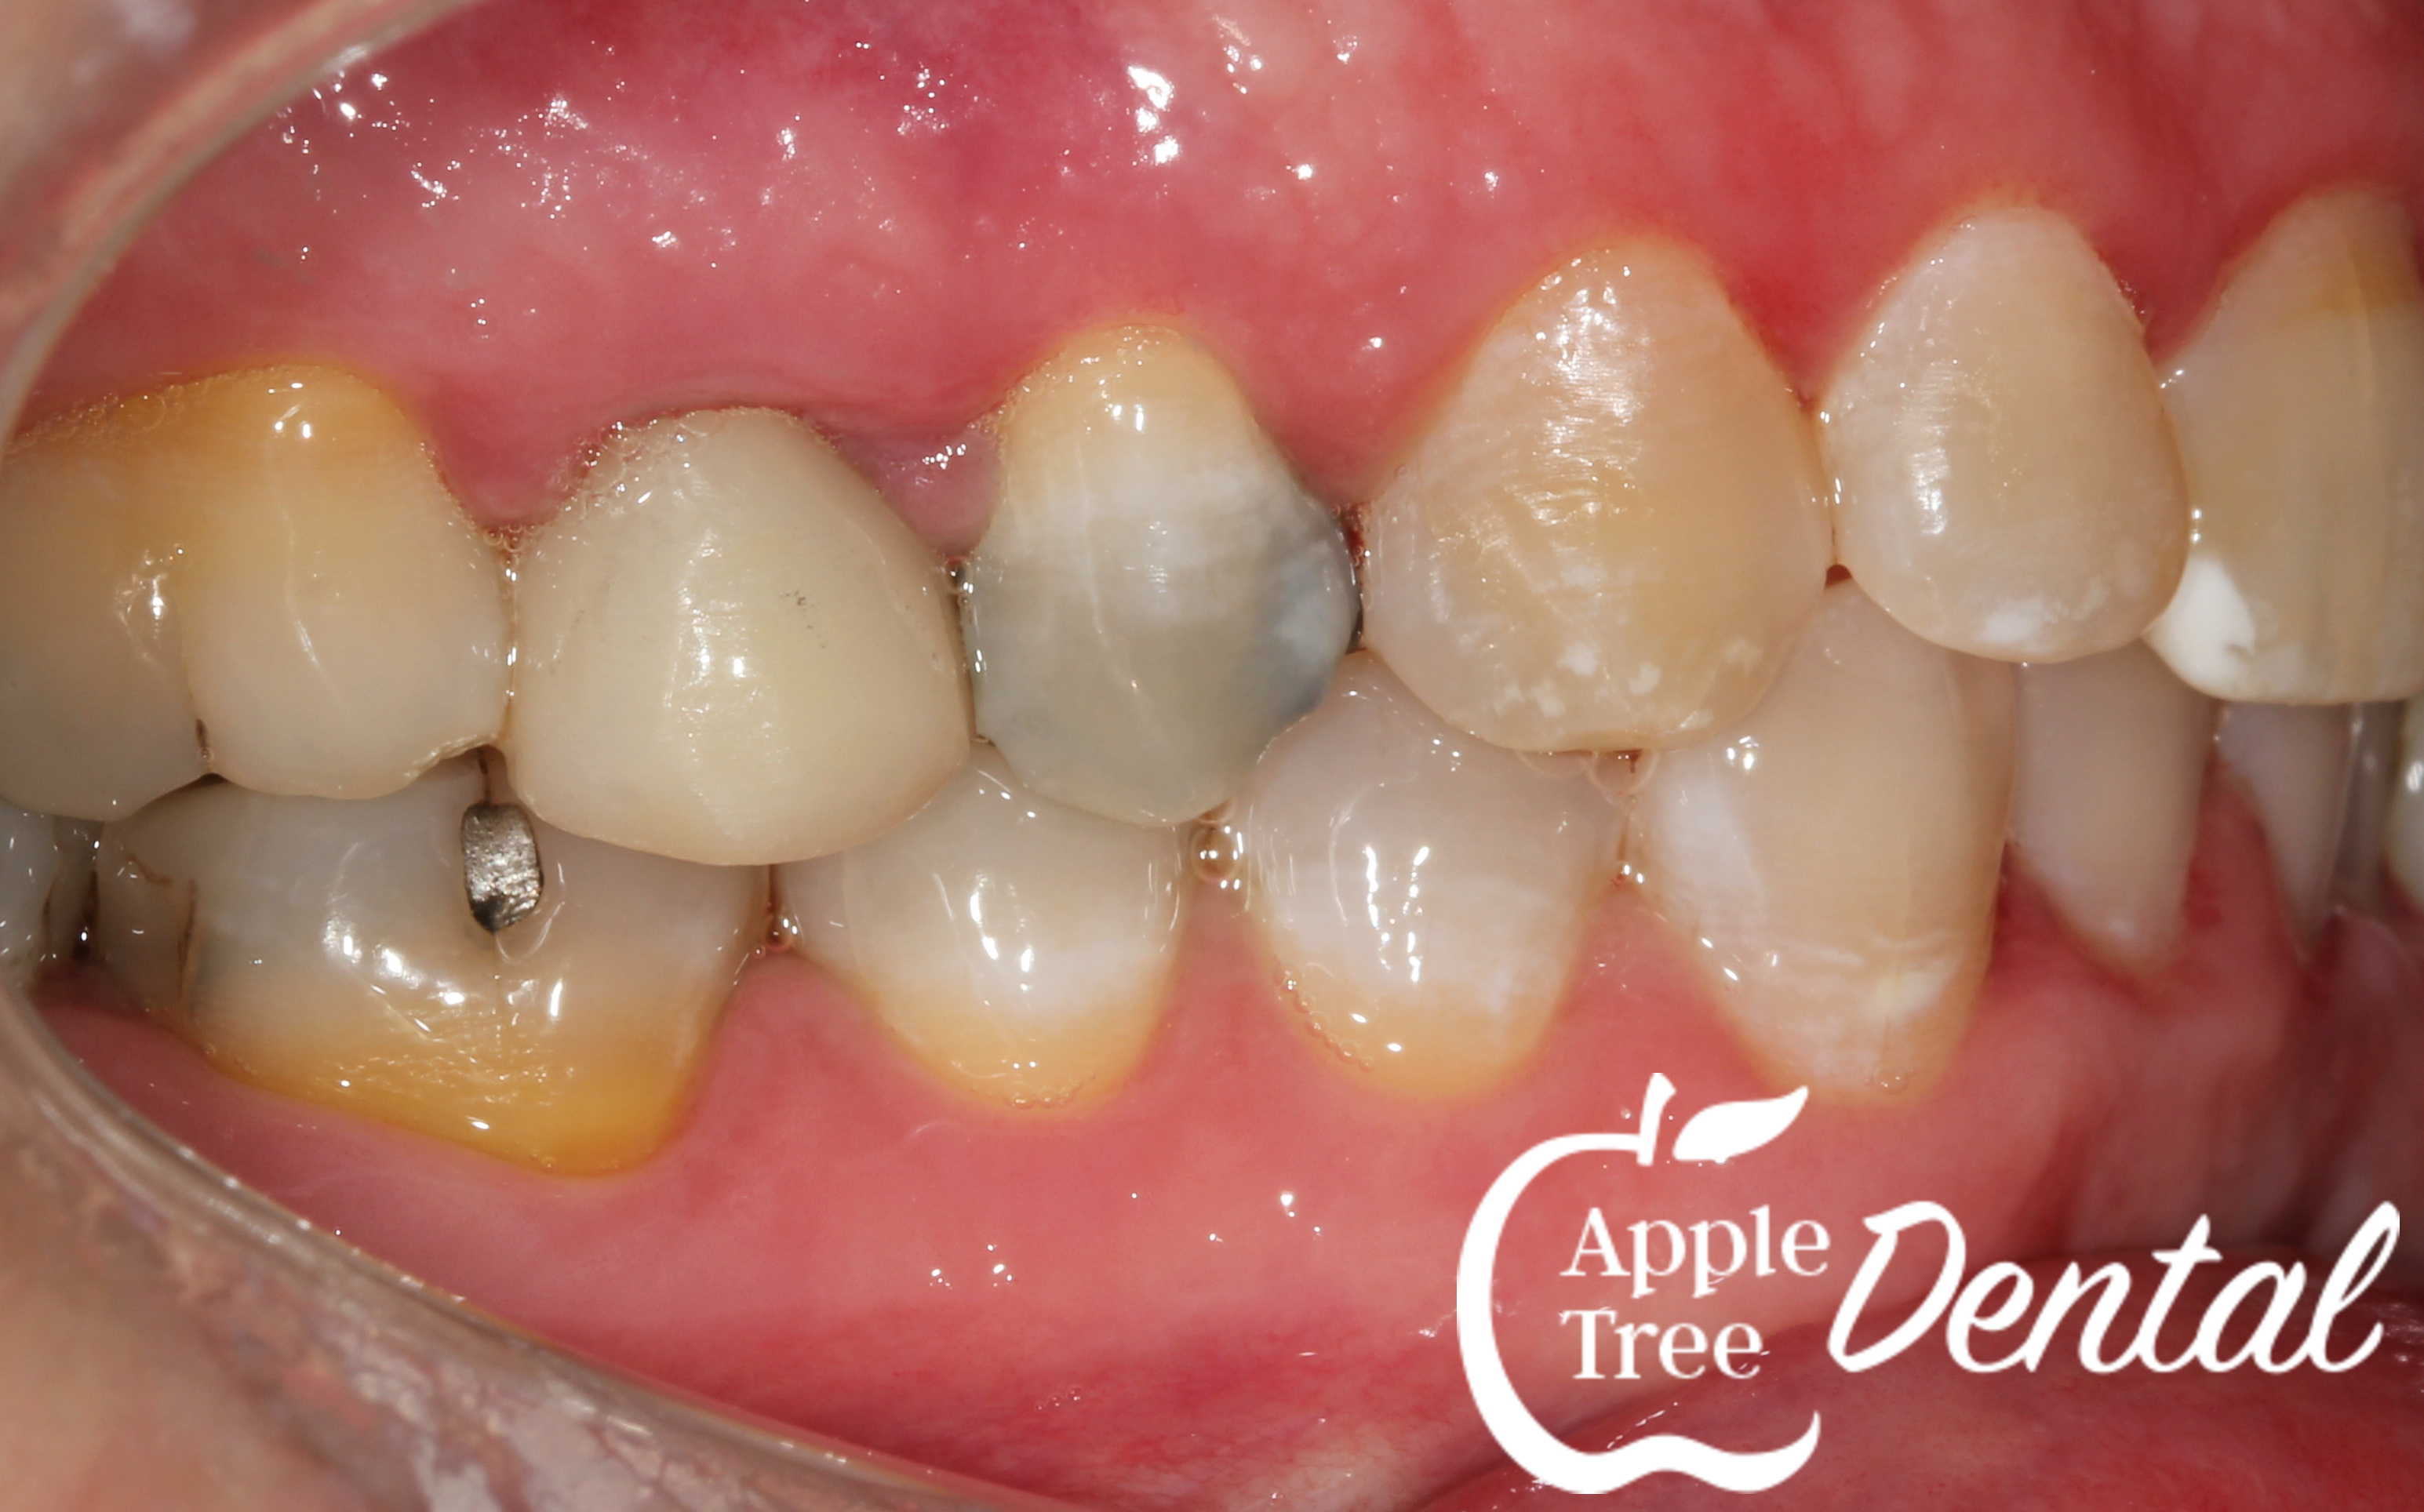 Darkened and unesthetic tooth due to silver fillings